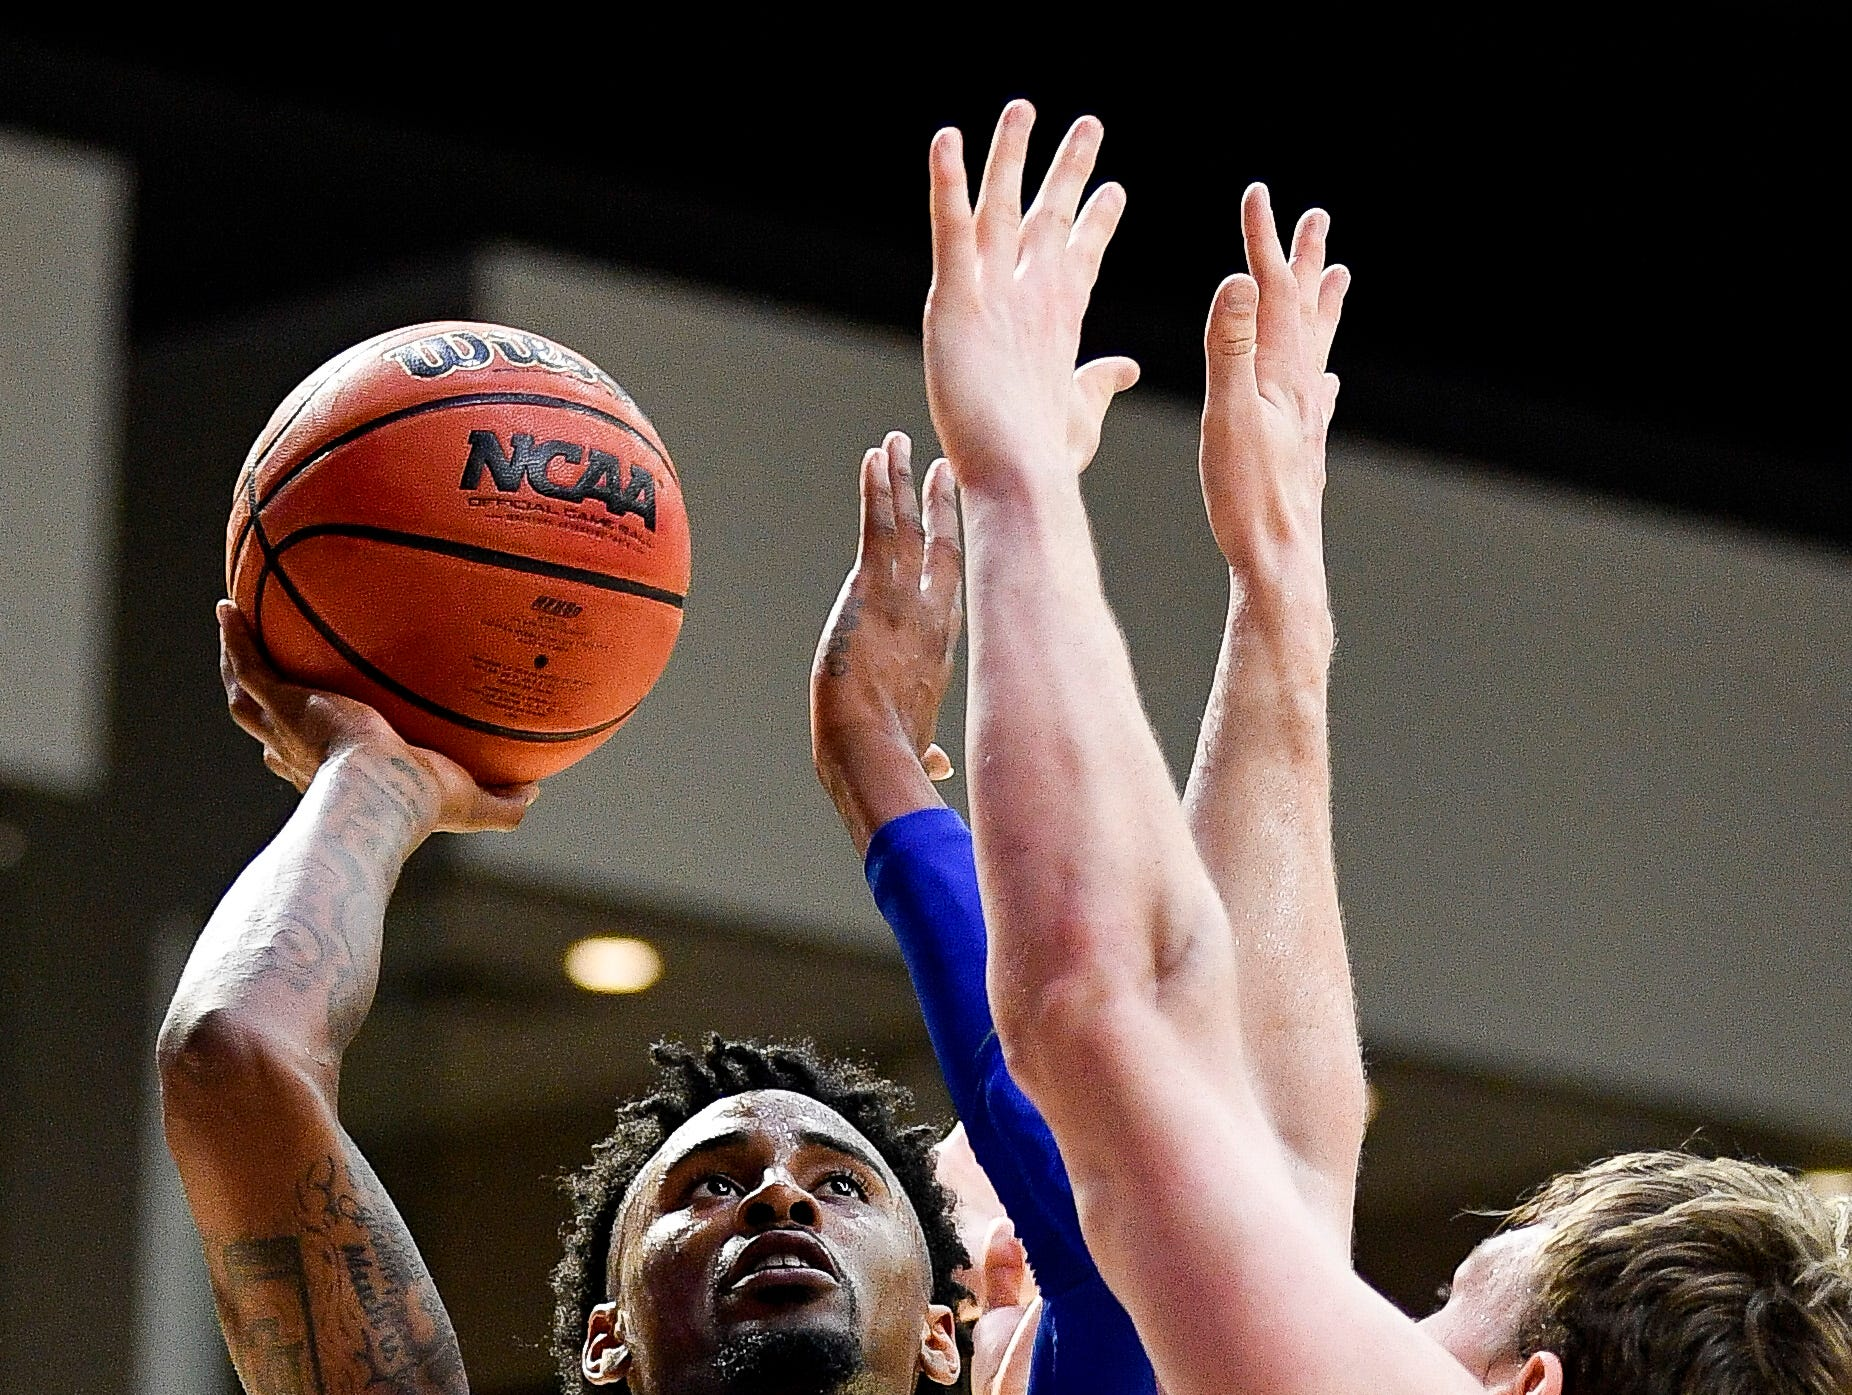 MTSU guard Antonio Green (55) shoots over Belmont forward Caleb Hollander (10) during the second half at the Curb Event Center Arena in Nashville, Tenn., Monday, Nov. 12, 2018.